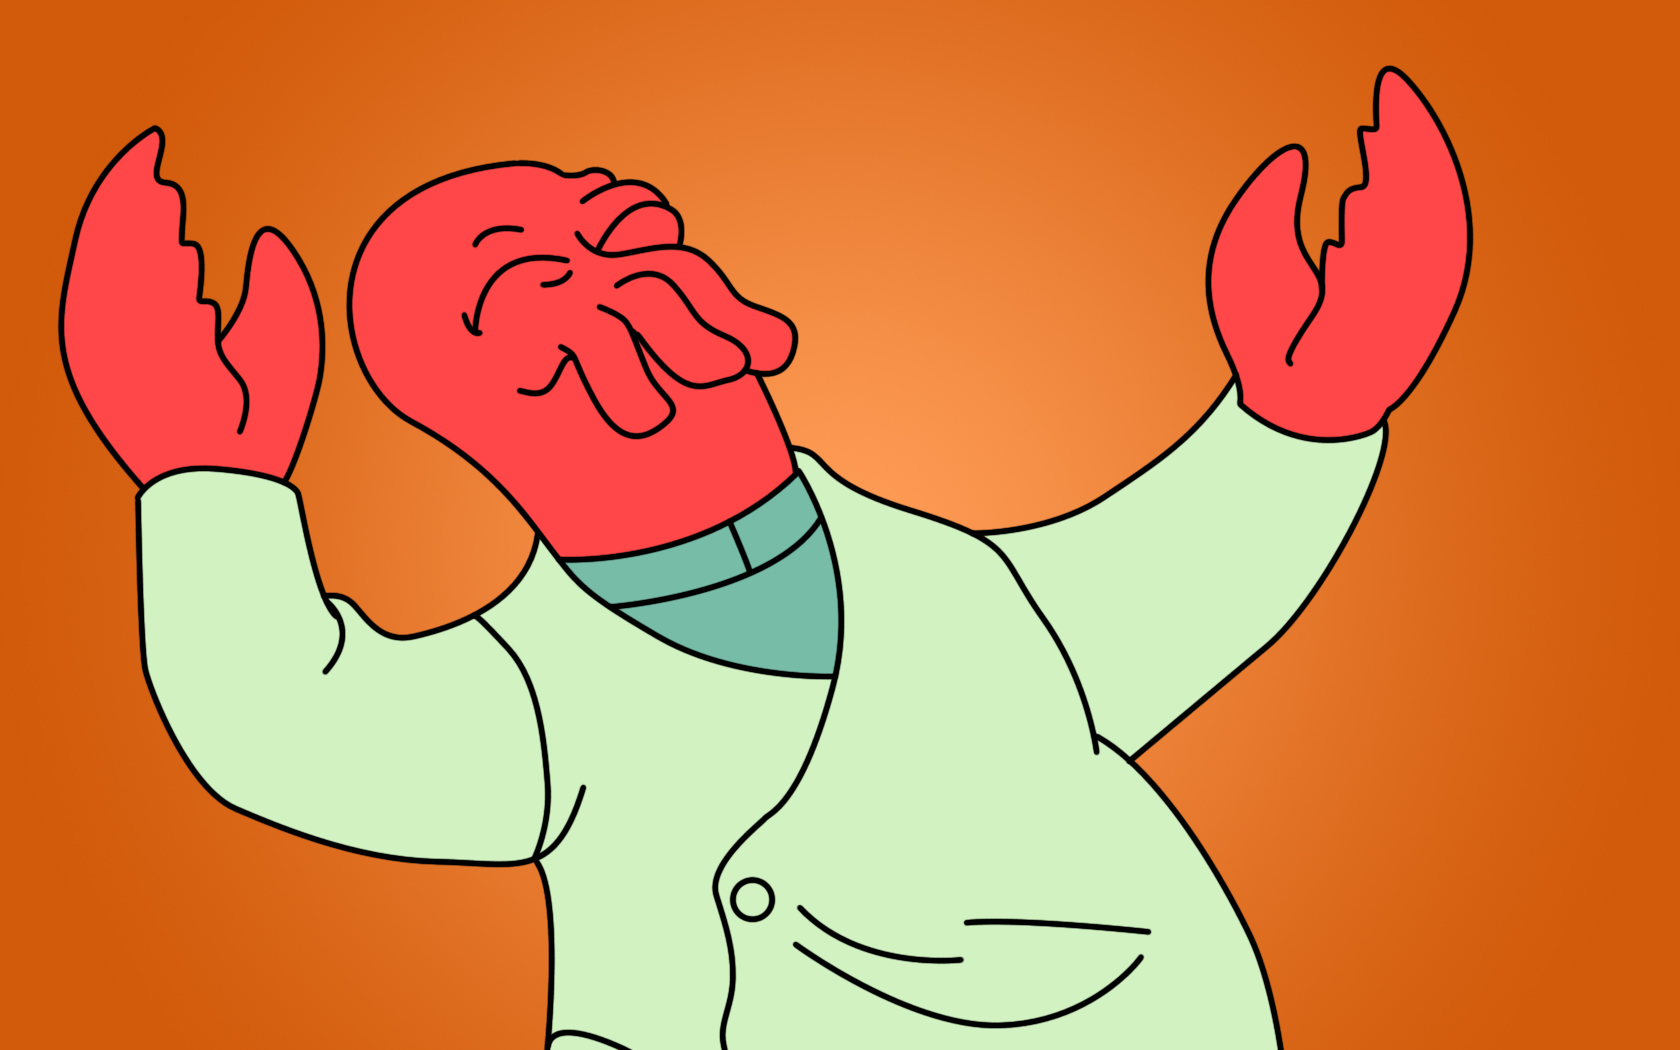 zoidberg for eyewire, neuron, futurama